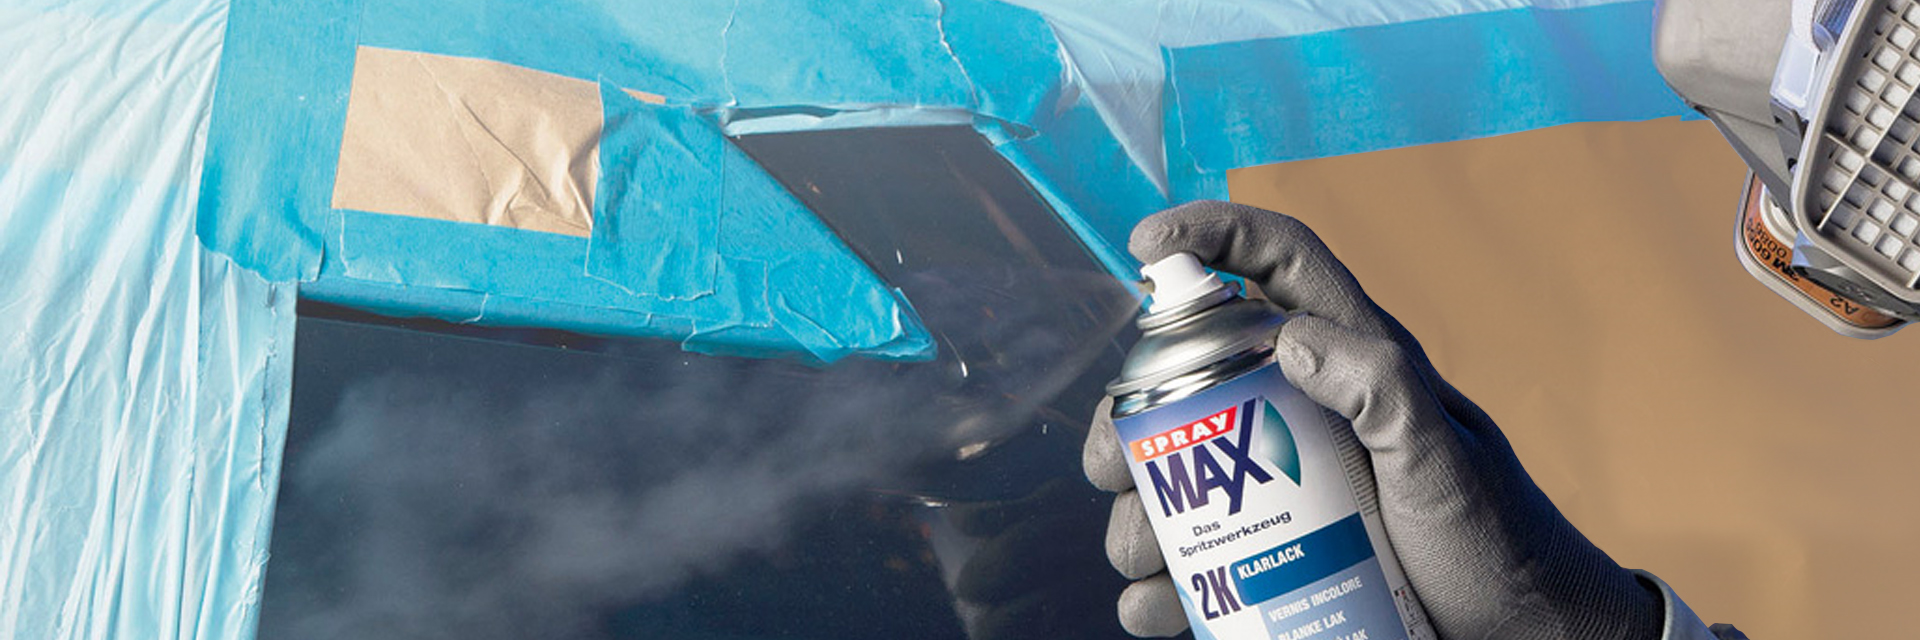 Ayce Systems SprayMax Paint Repair training course